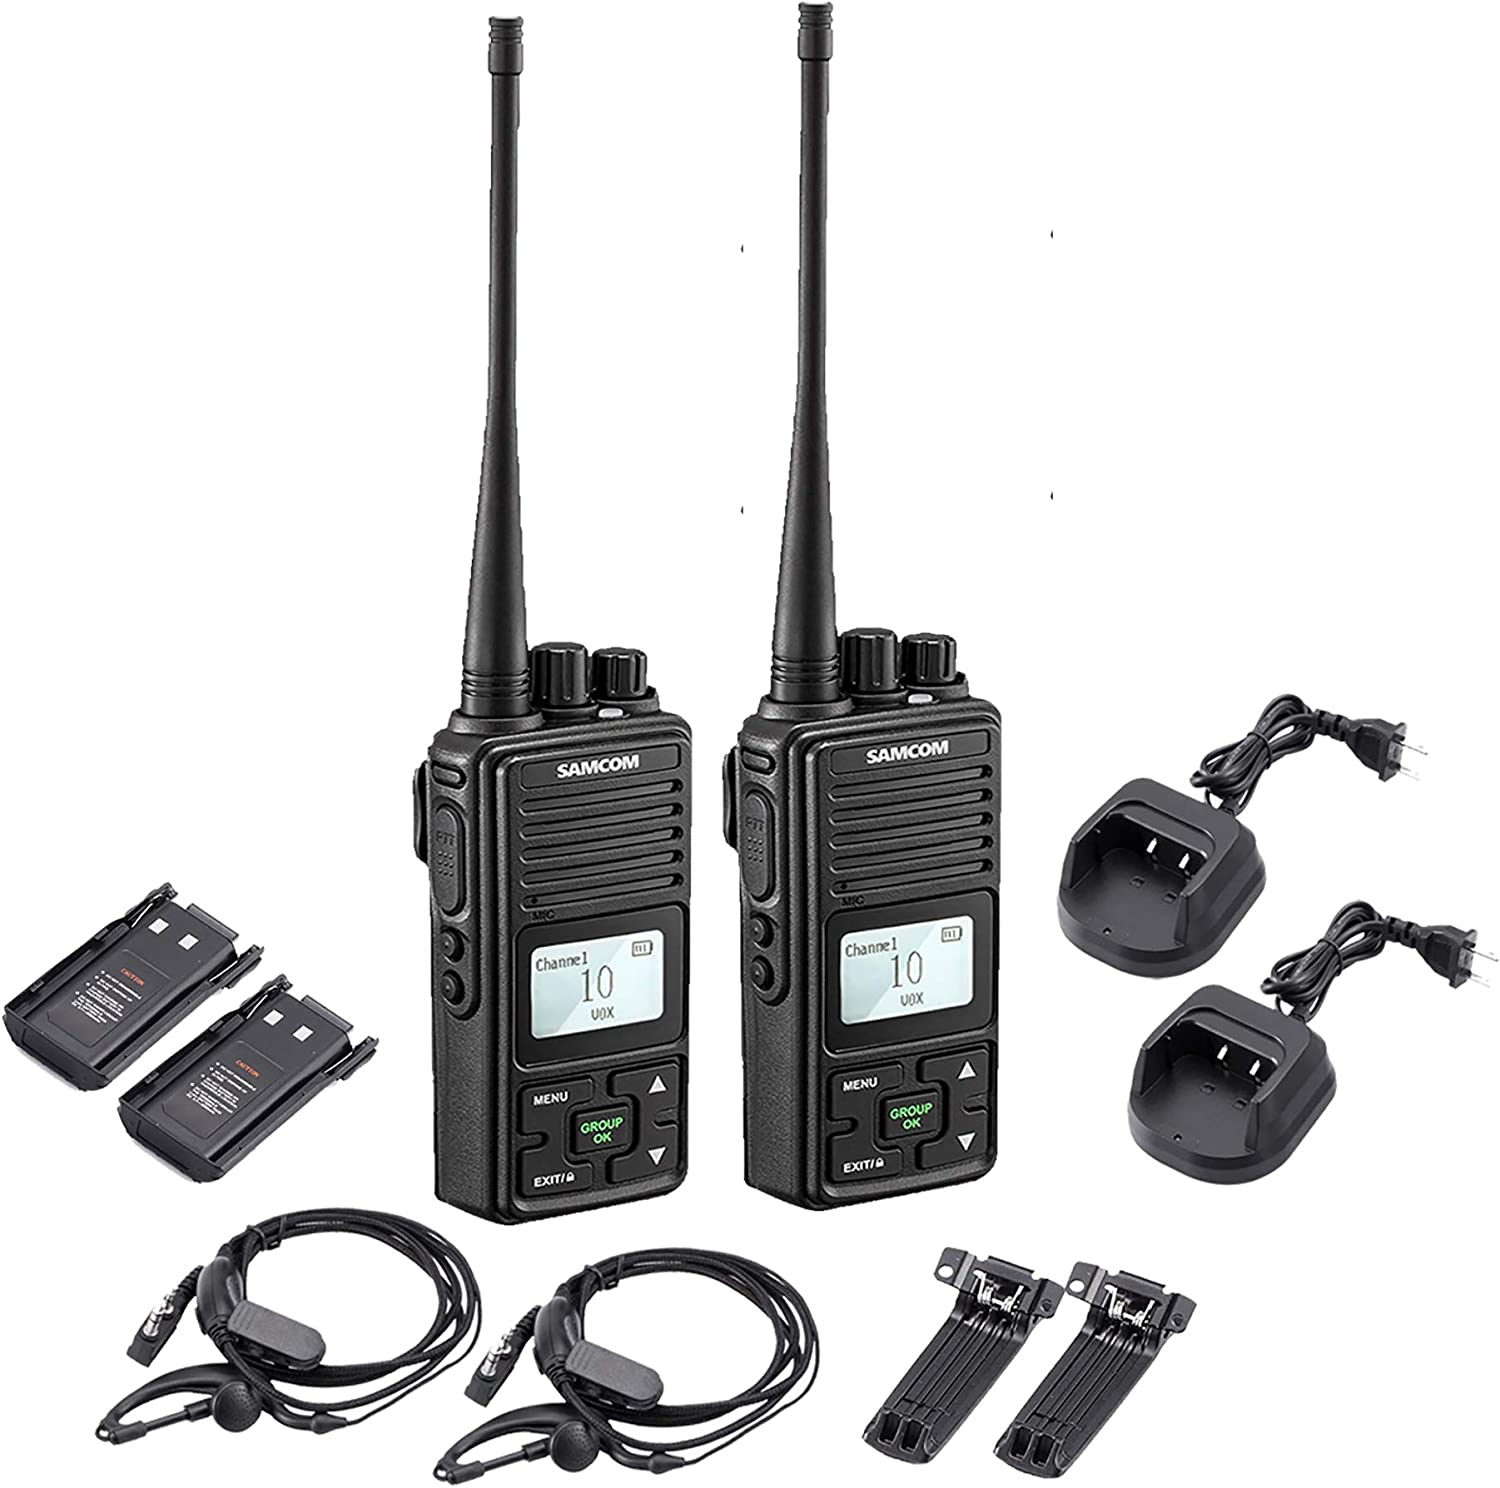 SAMCOM 20 Channel Walkie Talkie Wireless Intercom with Group Button, 2 Way Radio UHF 400-470MHz with 2.5 Miles Range, Earpiece Belt Clip Included – Black